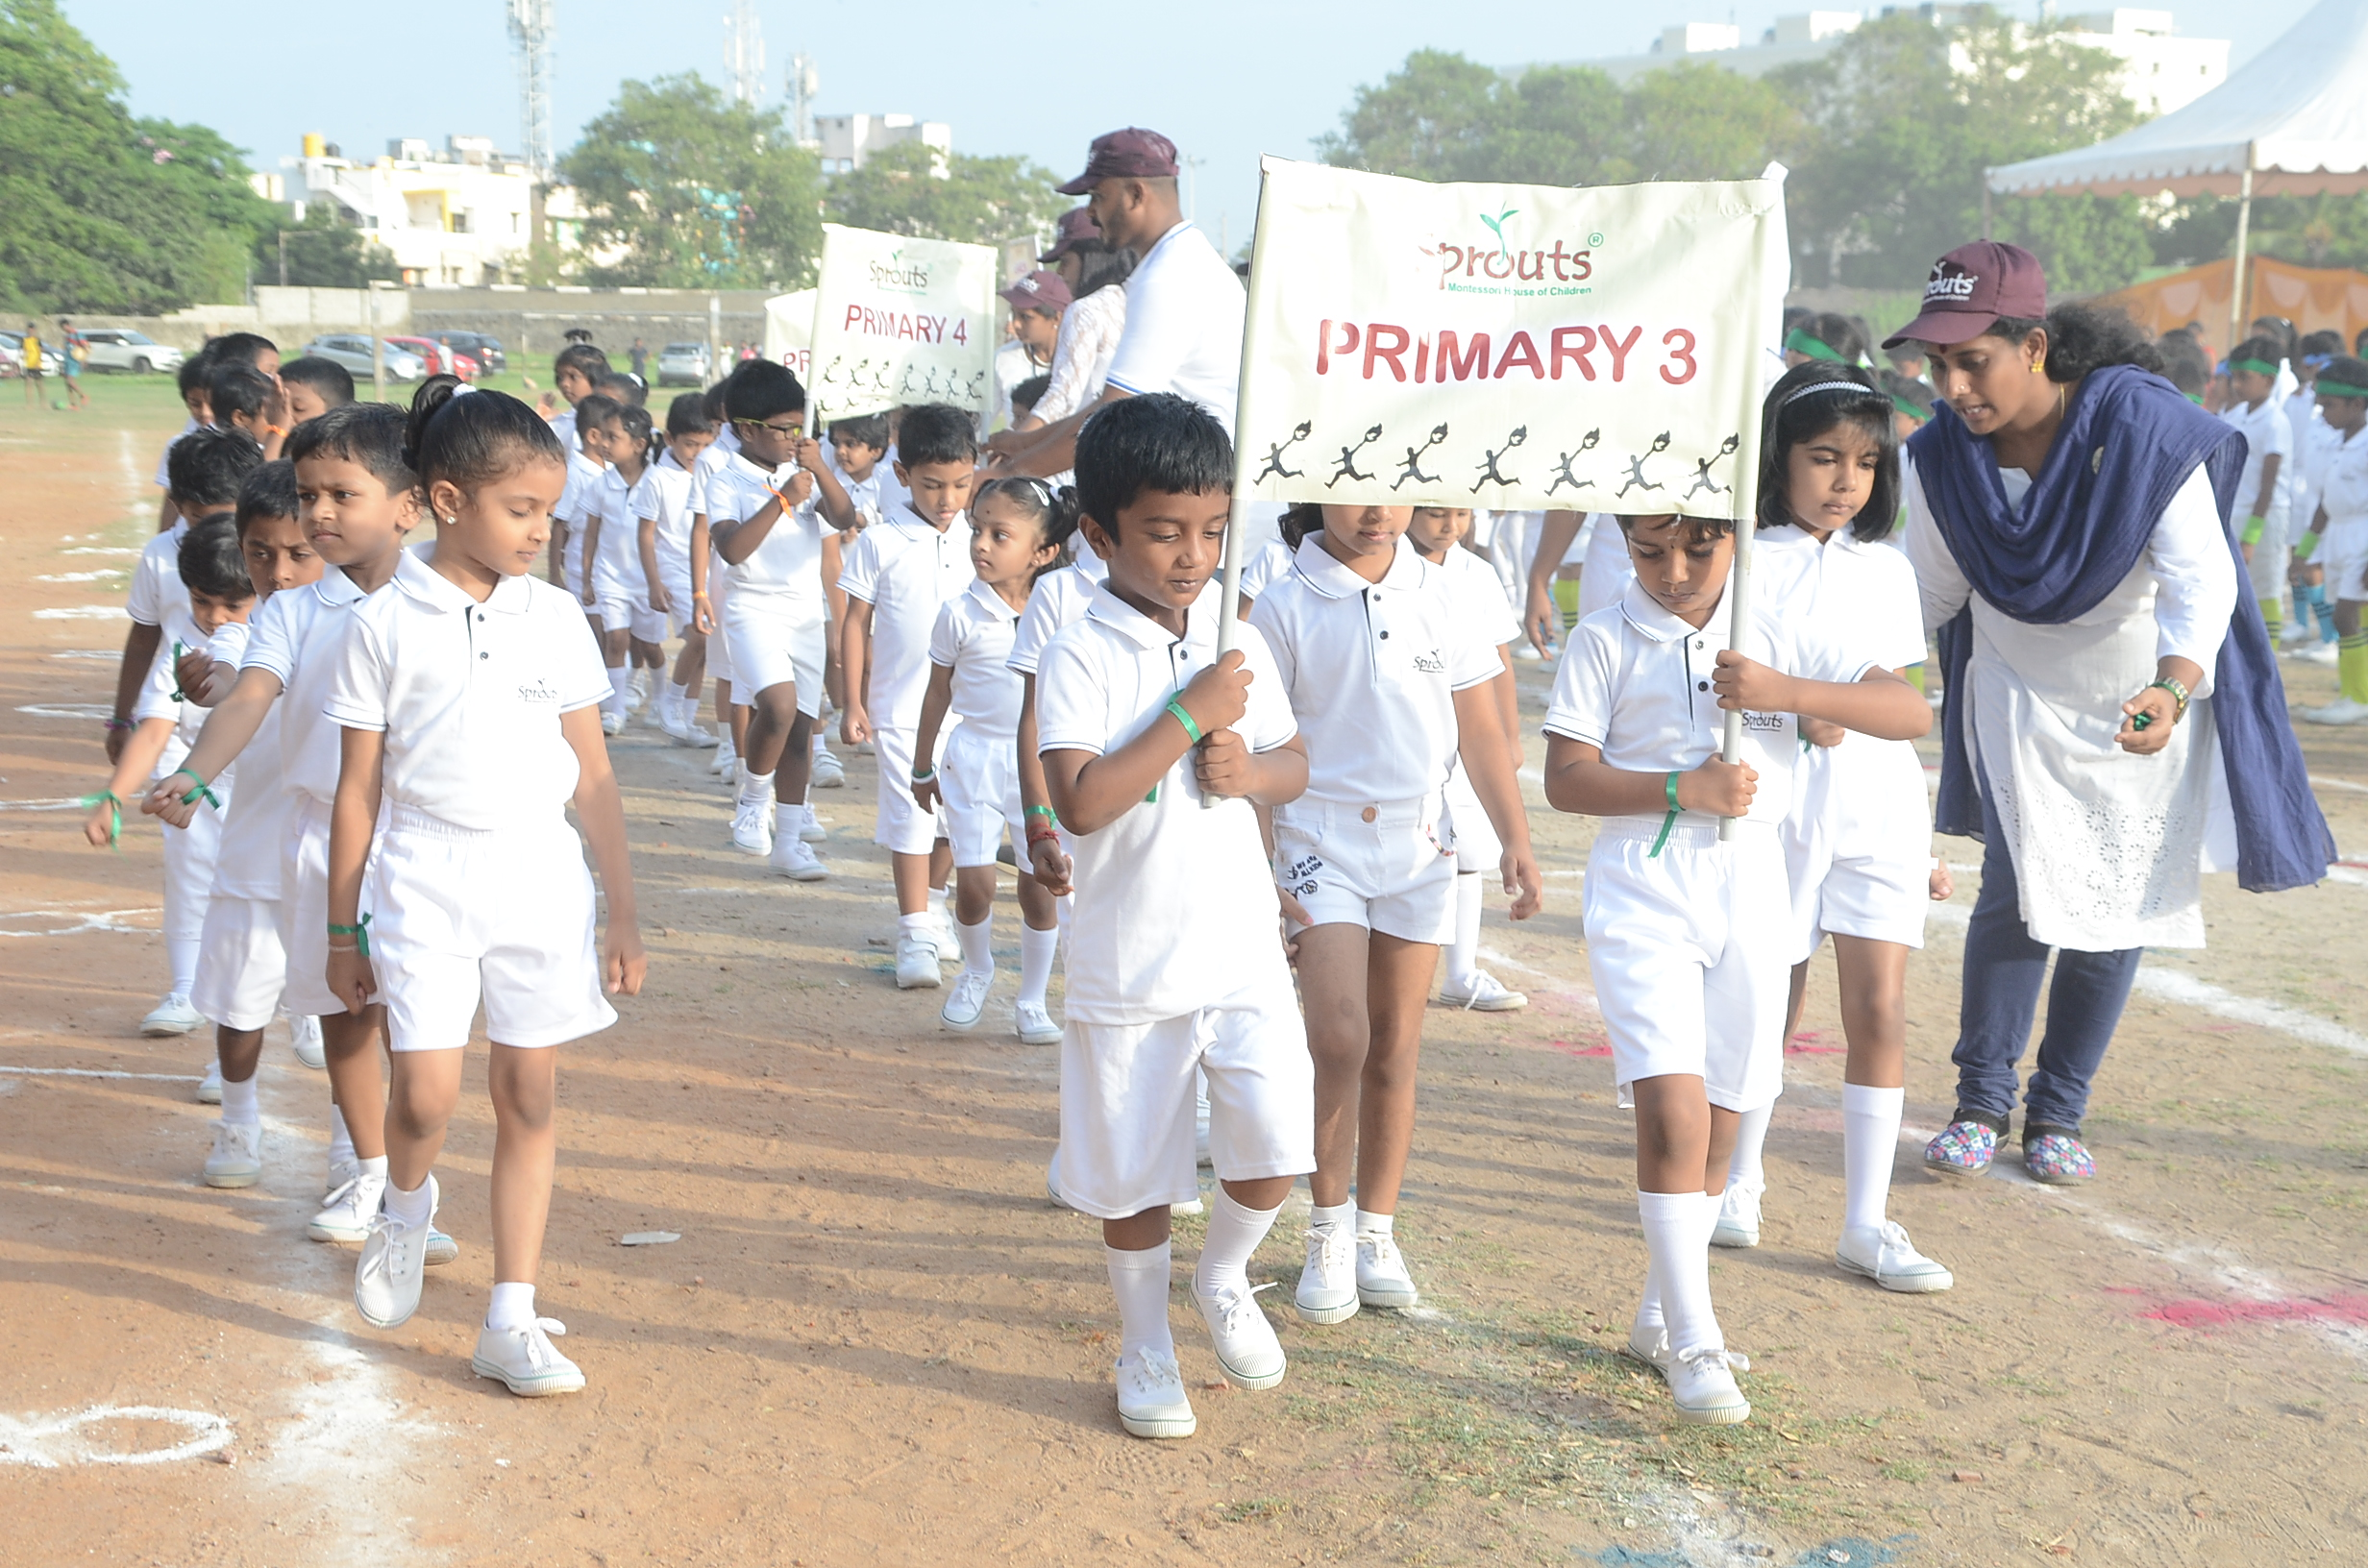 March Past by Primary 3